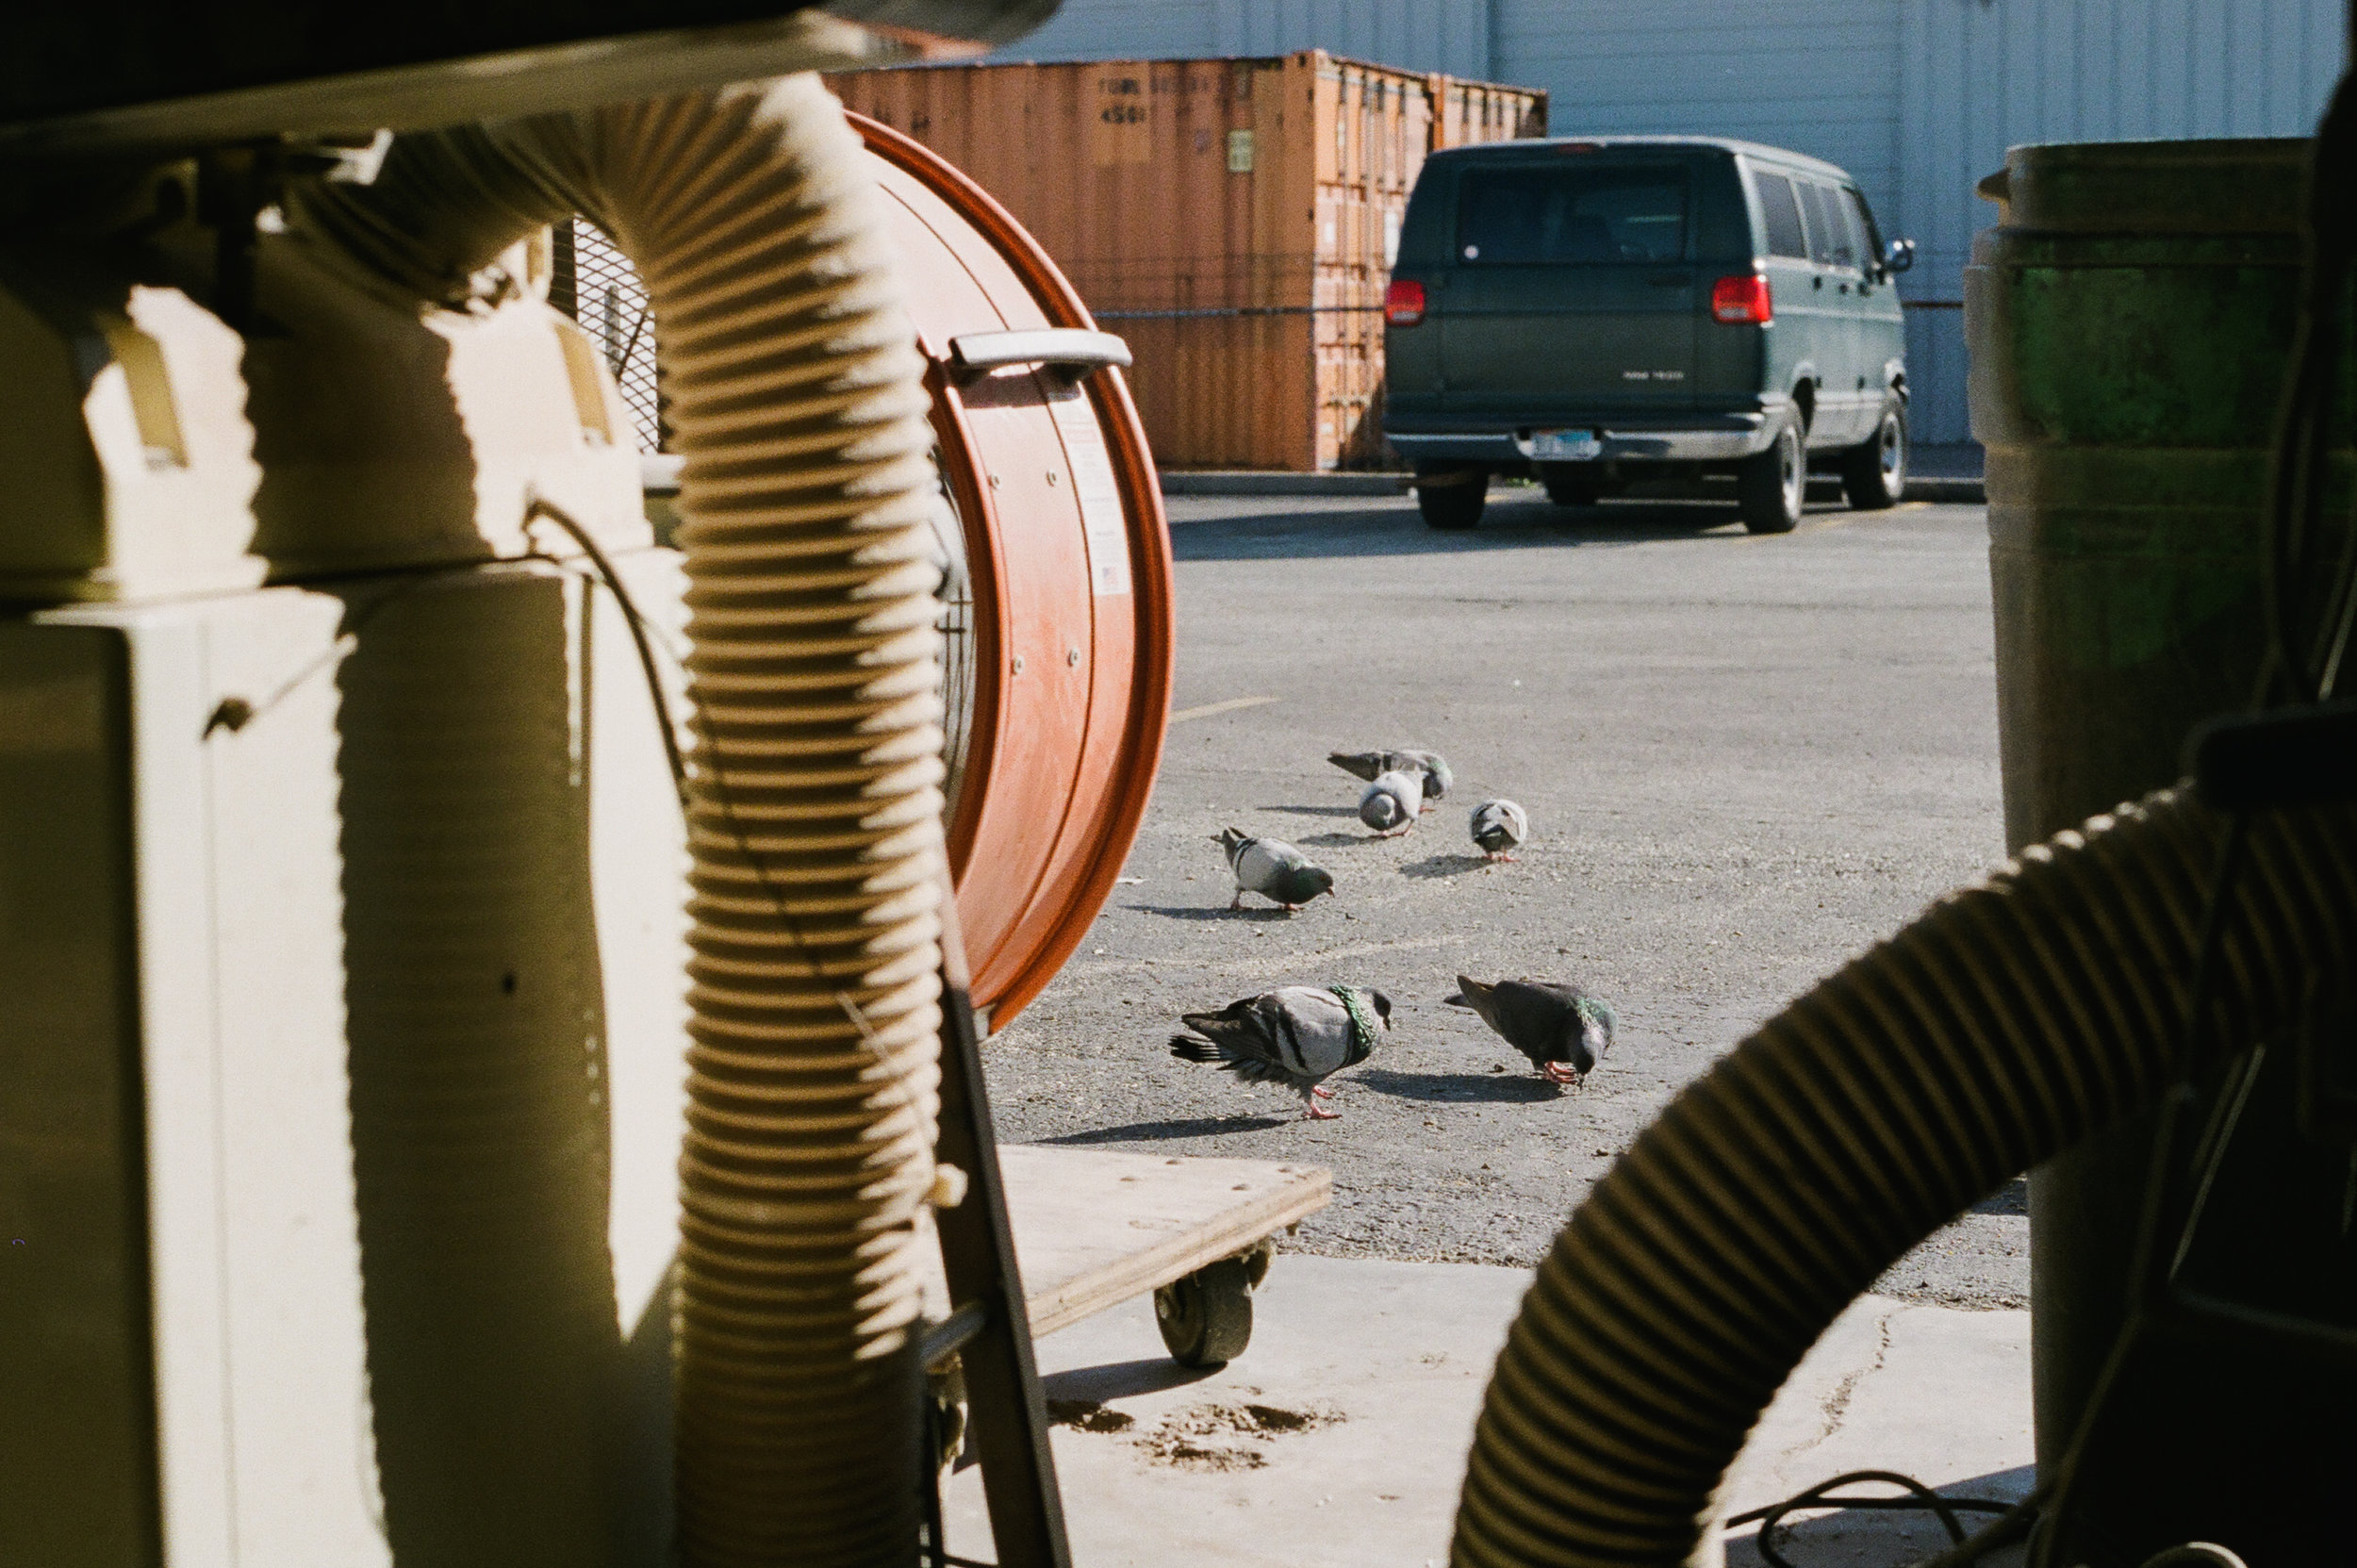 Creative-Spaces-Side-Project-Skateboards-Portra-400-004.jpg